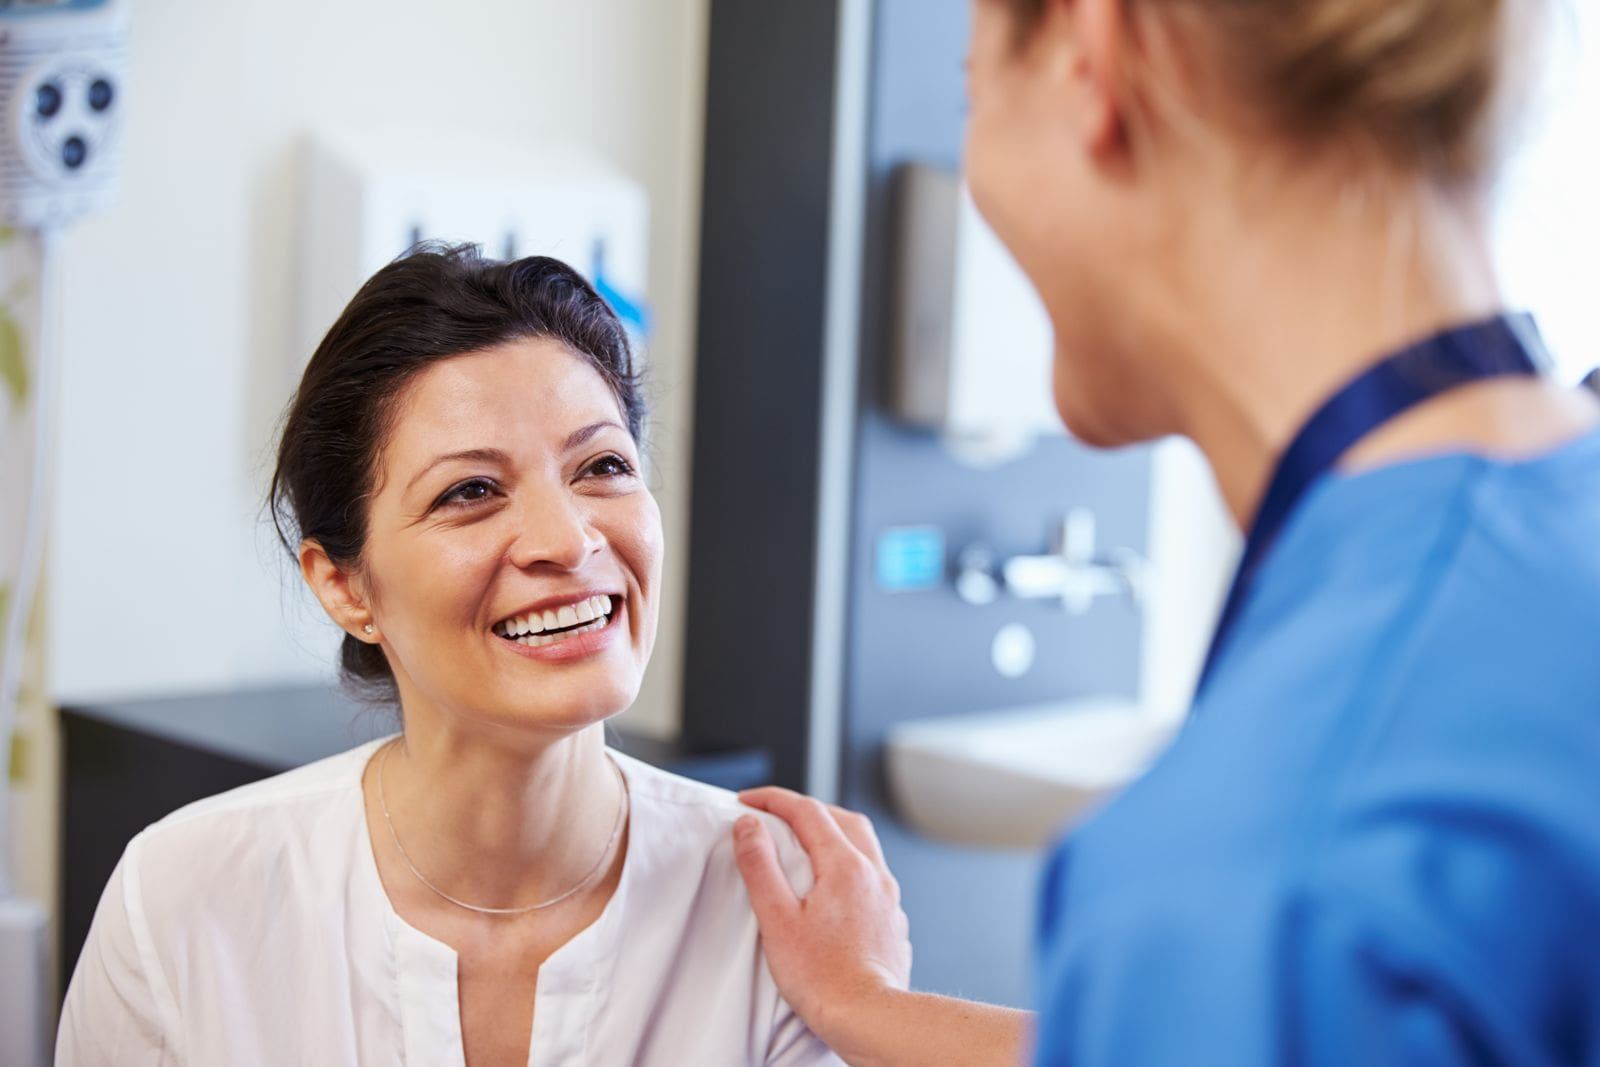 A female doctor talking with a female patient